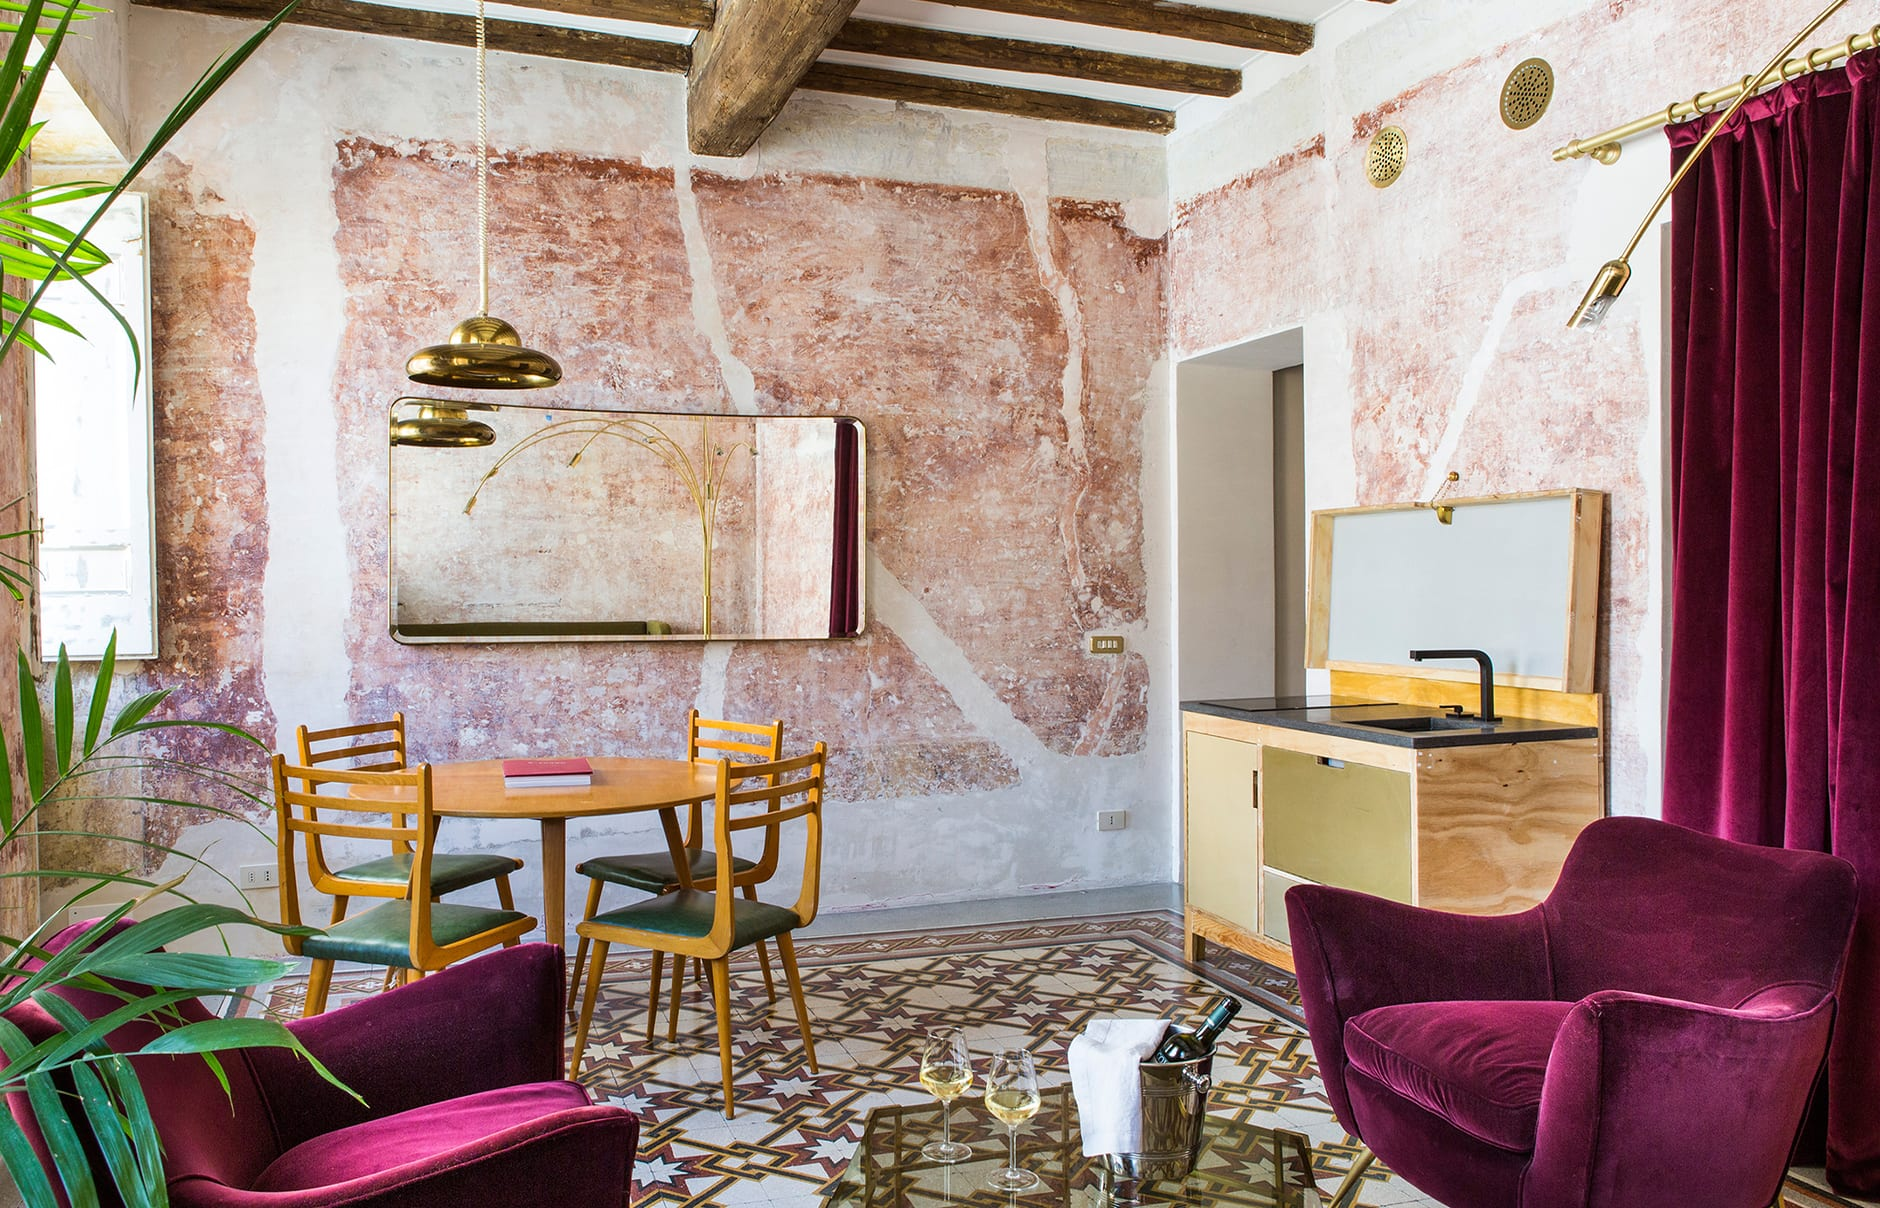 G-Rough, Rome, Italy. Hotel Review by TravelPlusStyle. Photo © G-ROUGH